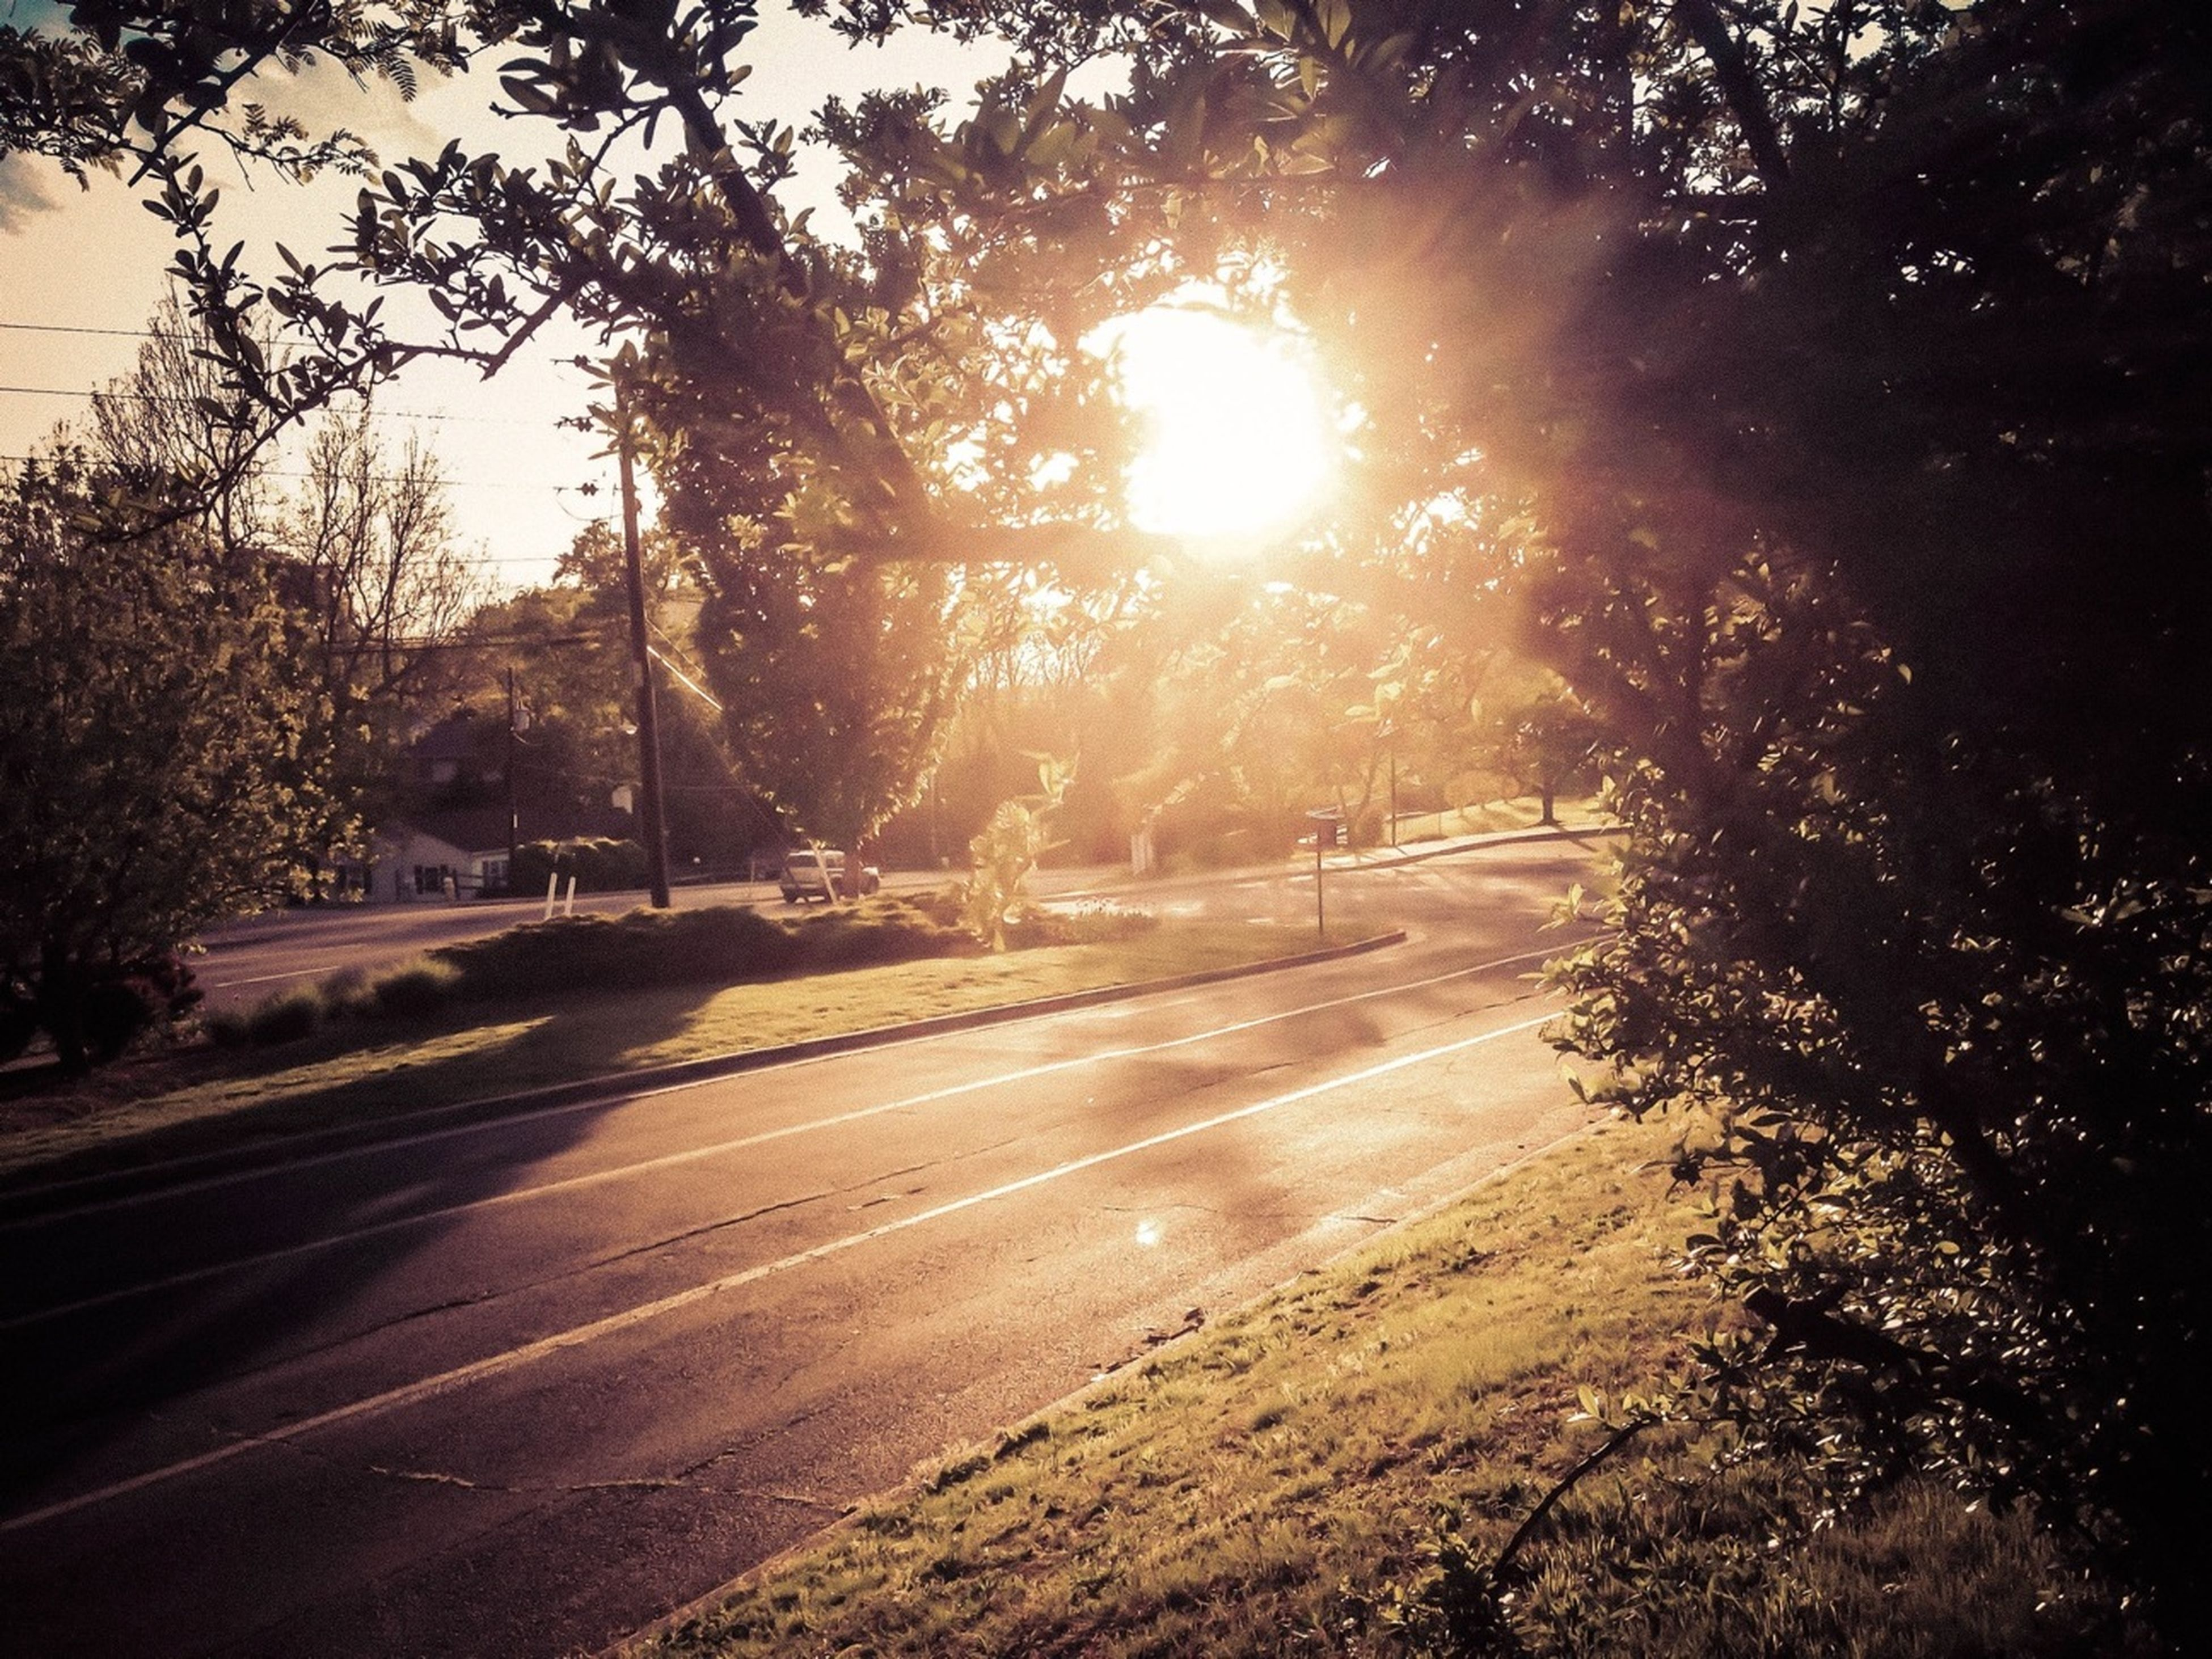 sun, tree, sunlight, sunbeam, lens flare, road, street, the way forward, nature, sunny, tranquility, sky, transportation, outdoors, built structure, growth, no people, shadow, tranquil scene, beauty in nature